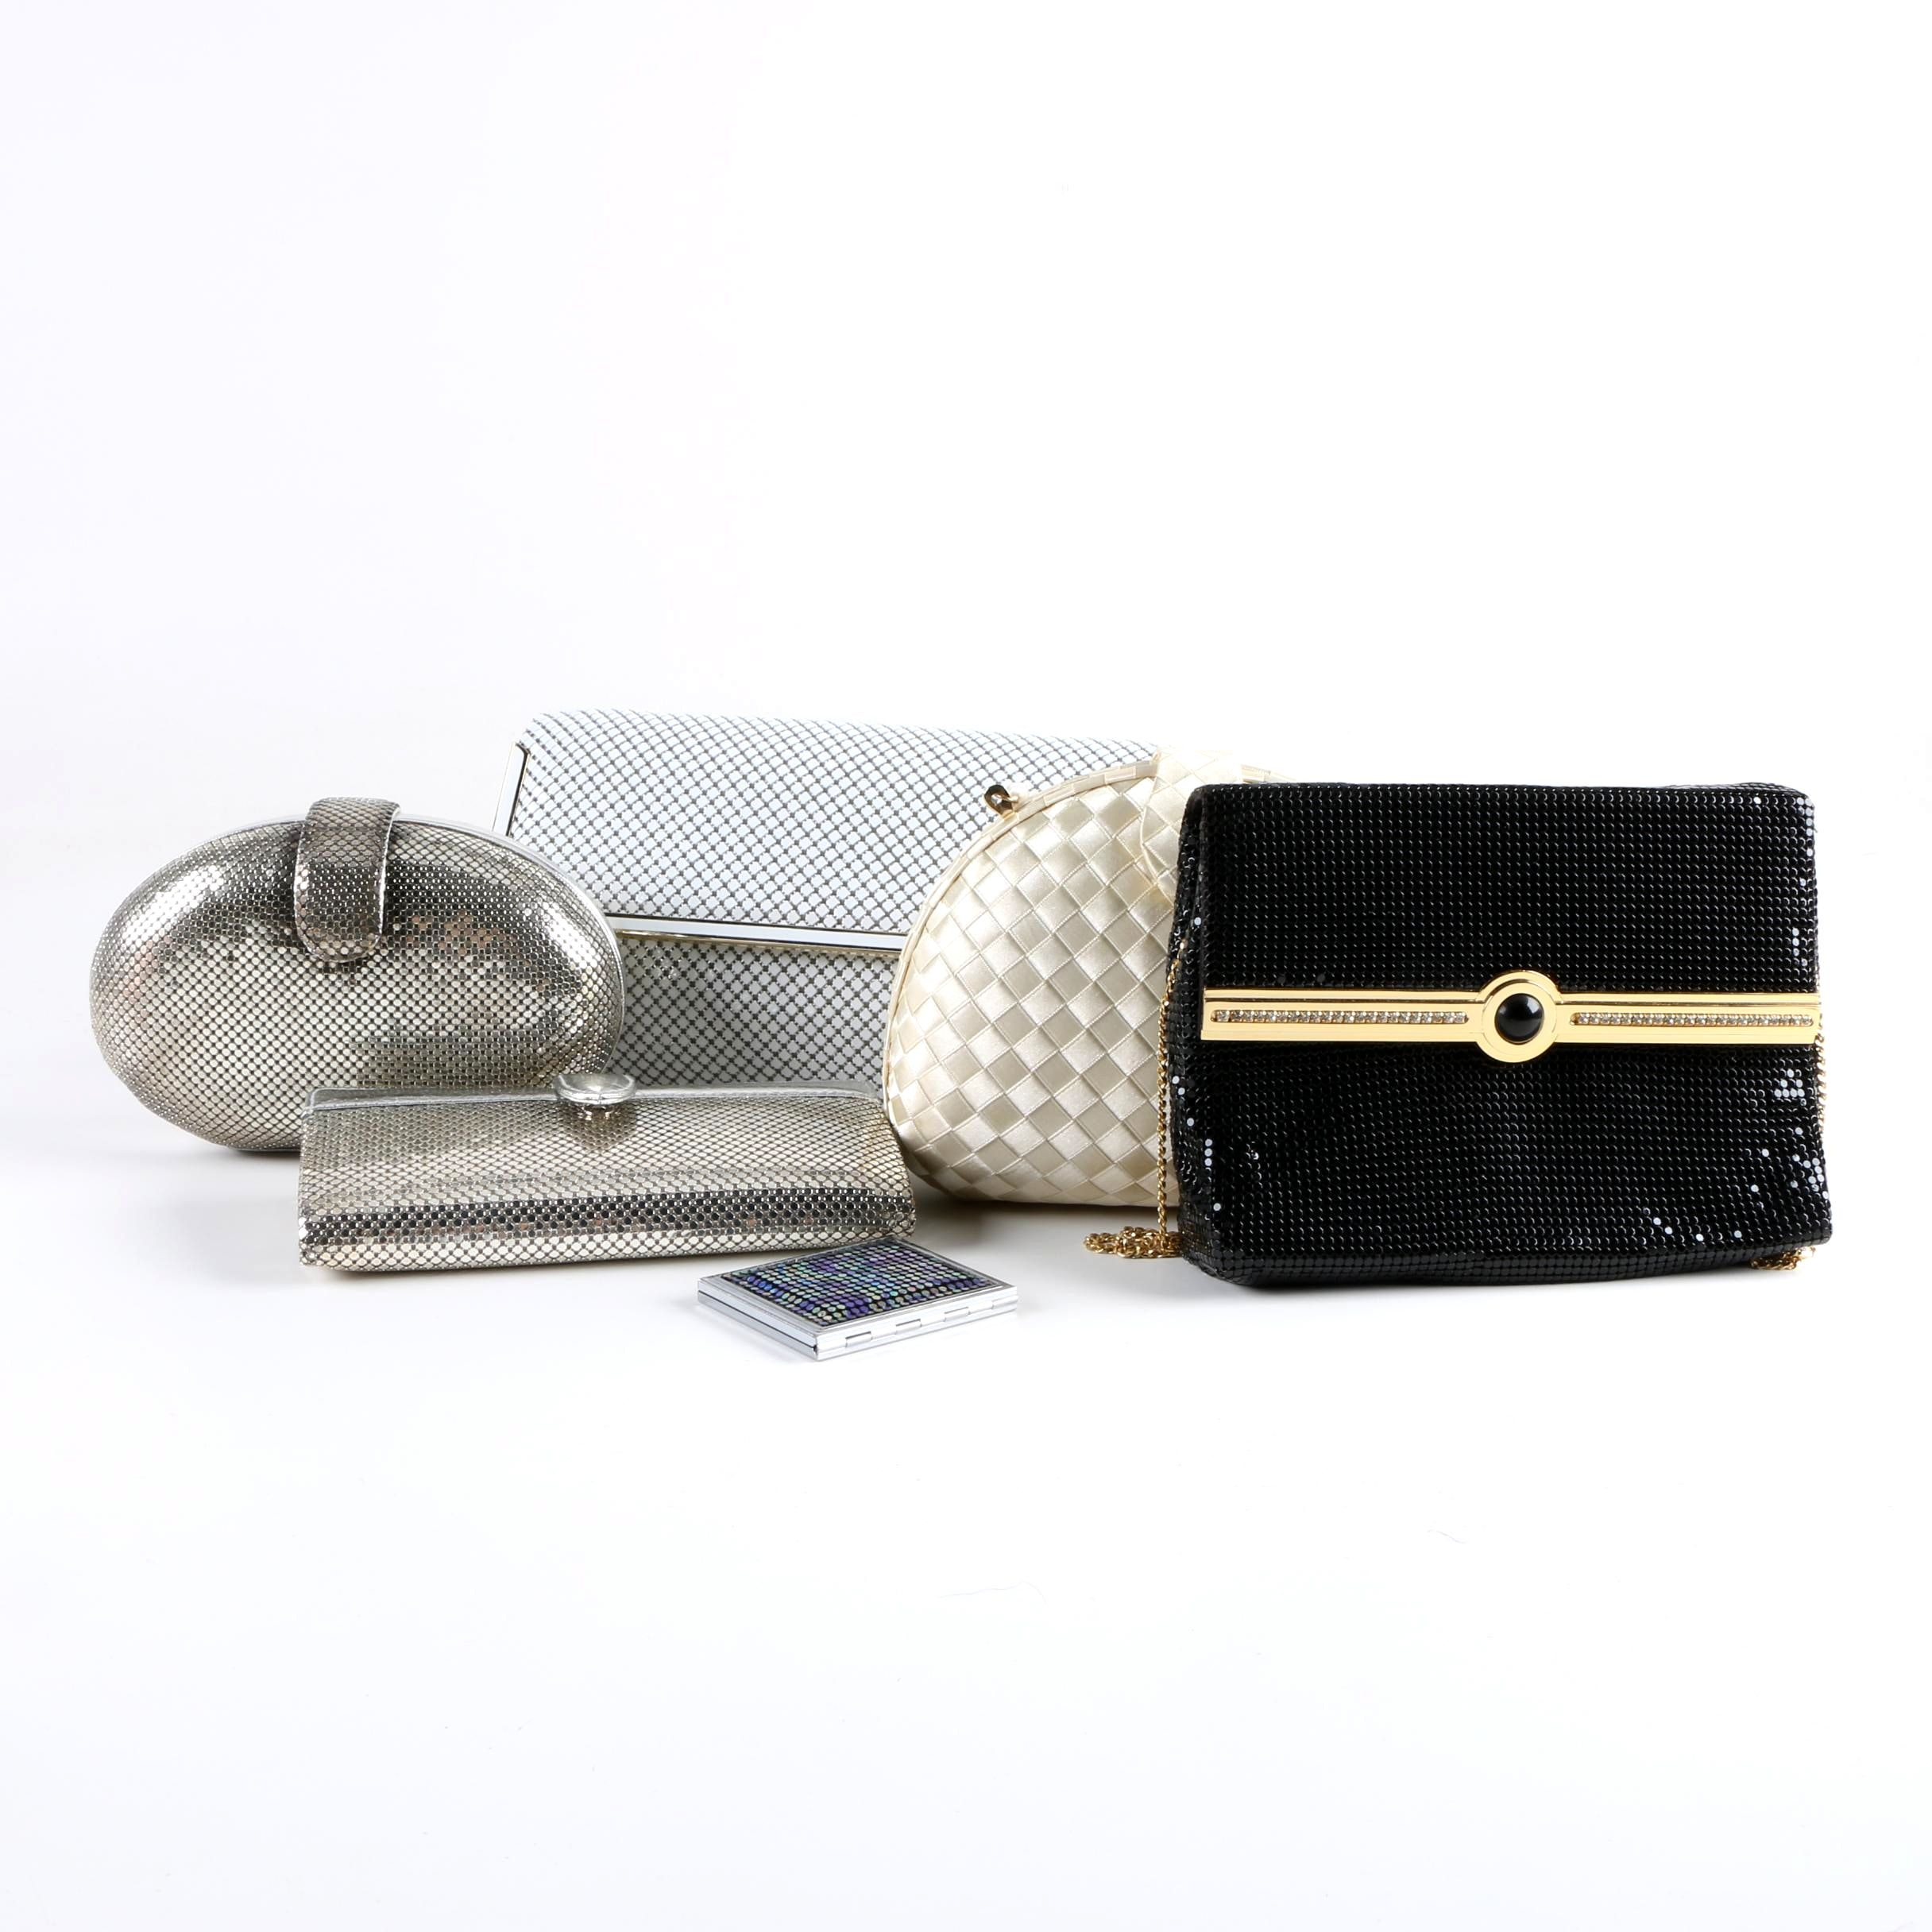 Vintage Whiting & Davis Evening Bags, Clutches, Compact and Wallet